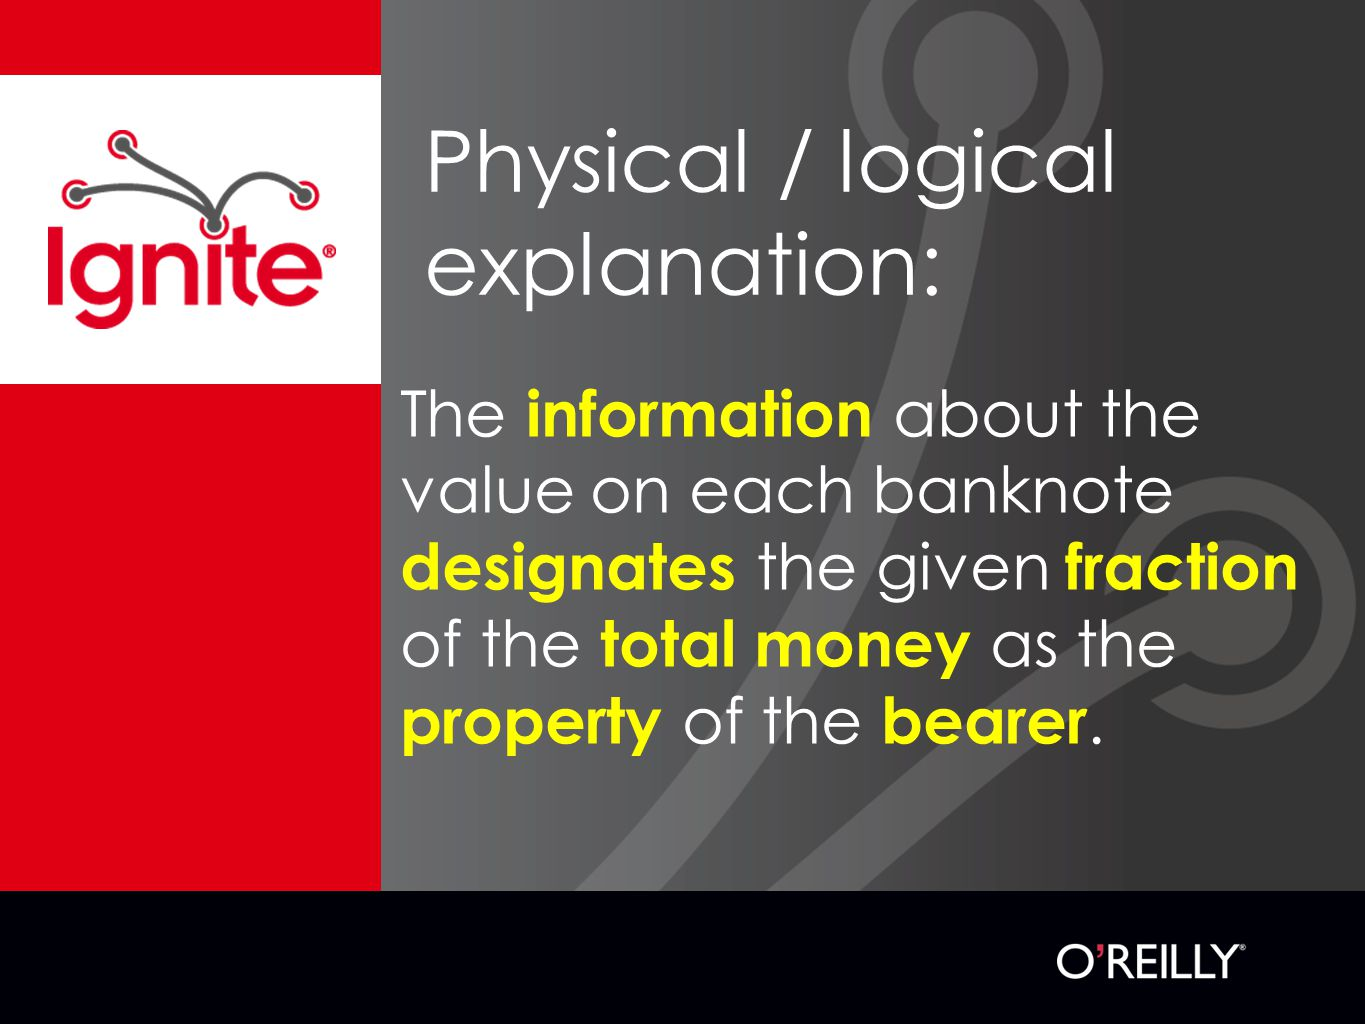 Physical / logical explanation: The information about the value on each banknote designates the given fraction of the total money as the property of the bearer.